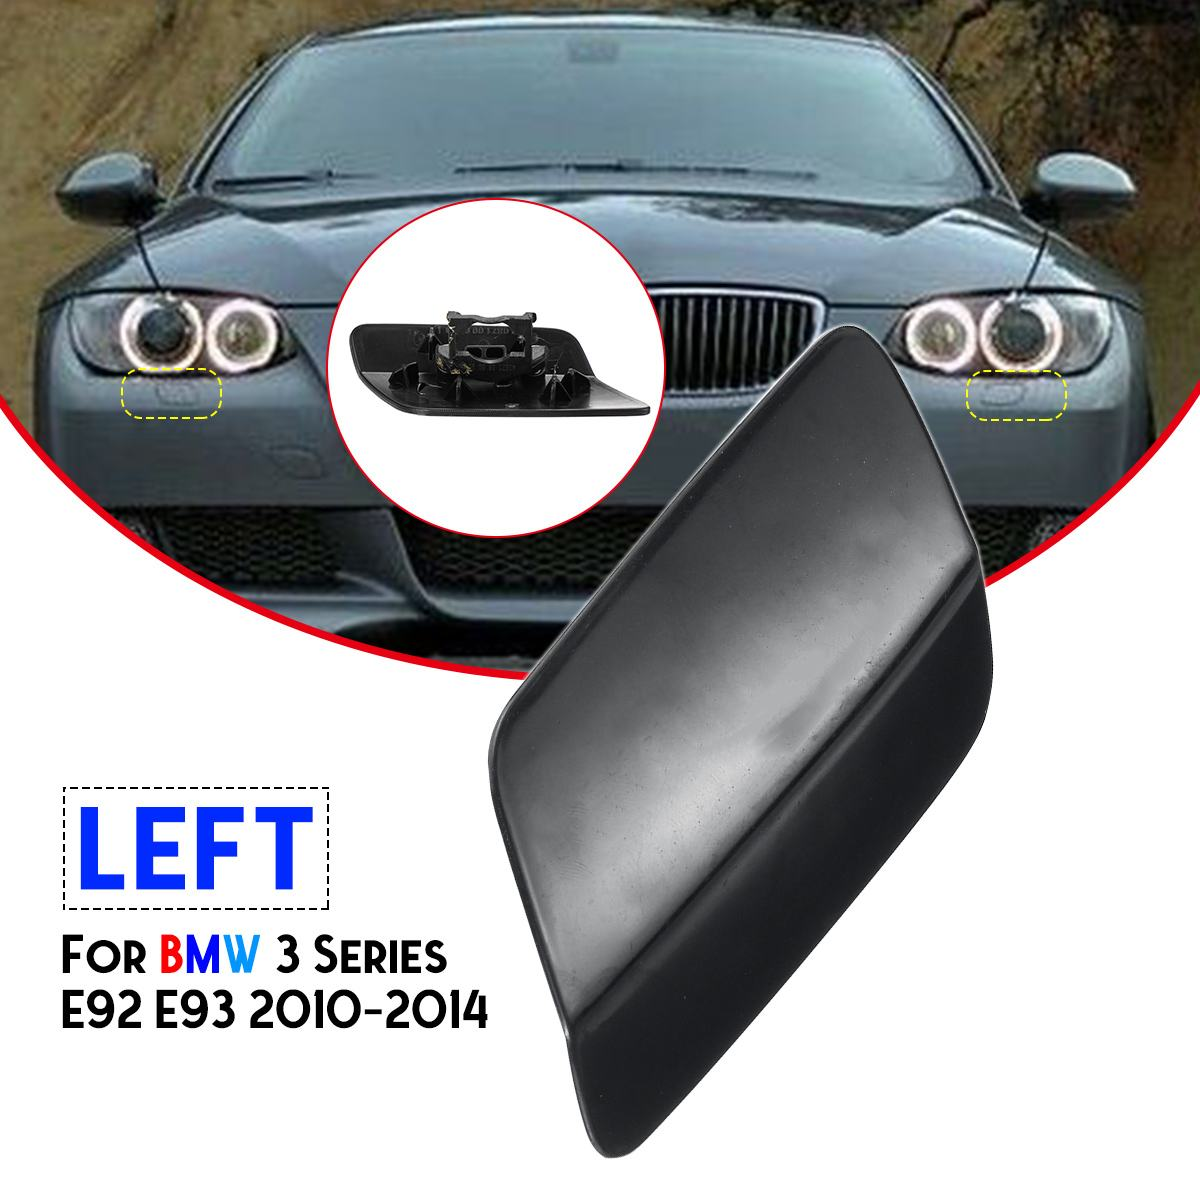 LH For BMW 3 Series 2005 2006 2007 2008 2009 Front Washer Nozzle Cover Unpainted